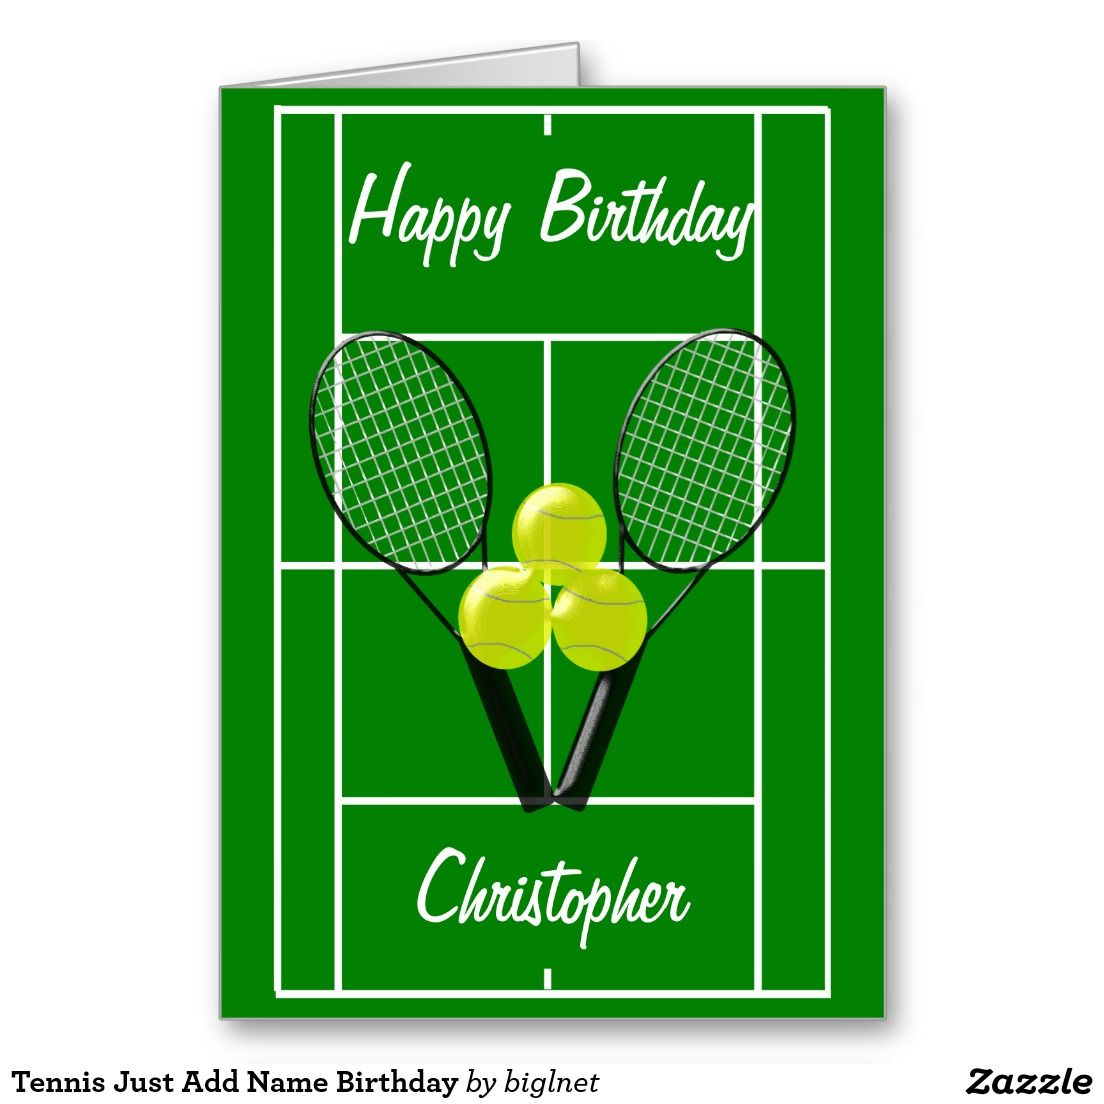 1ebddb4b7  Tennis Just Add Name  Birthday Greeting  Card